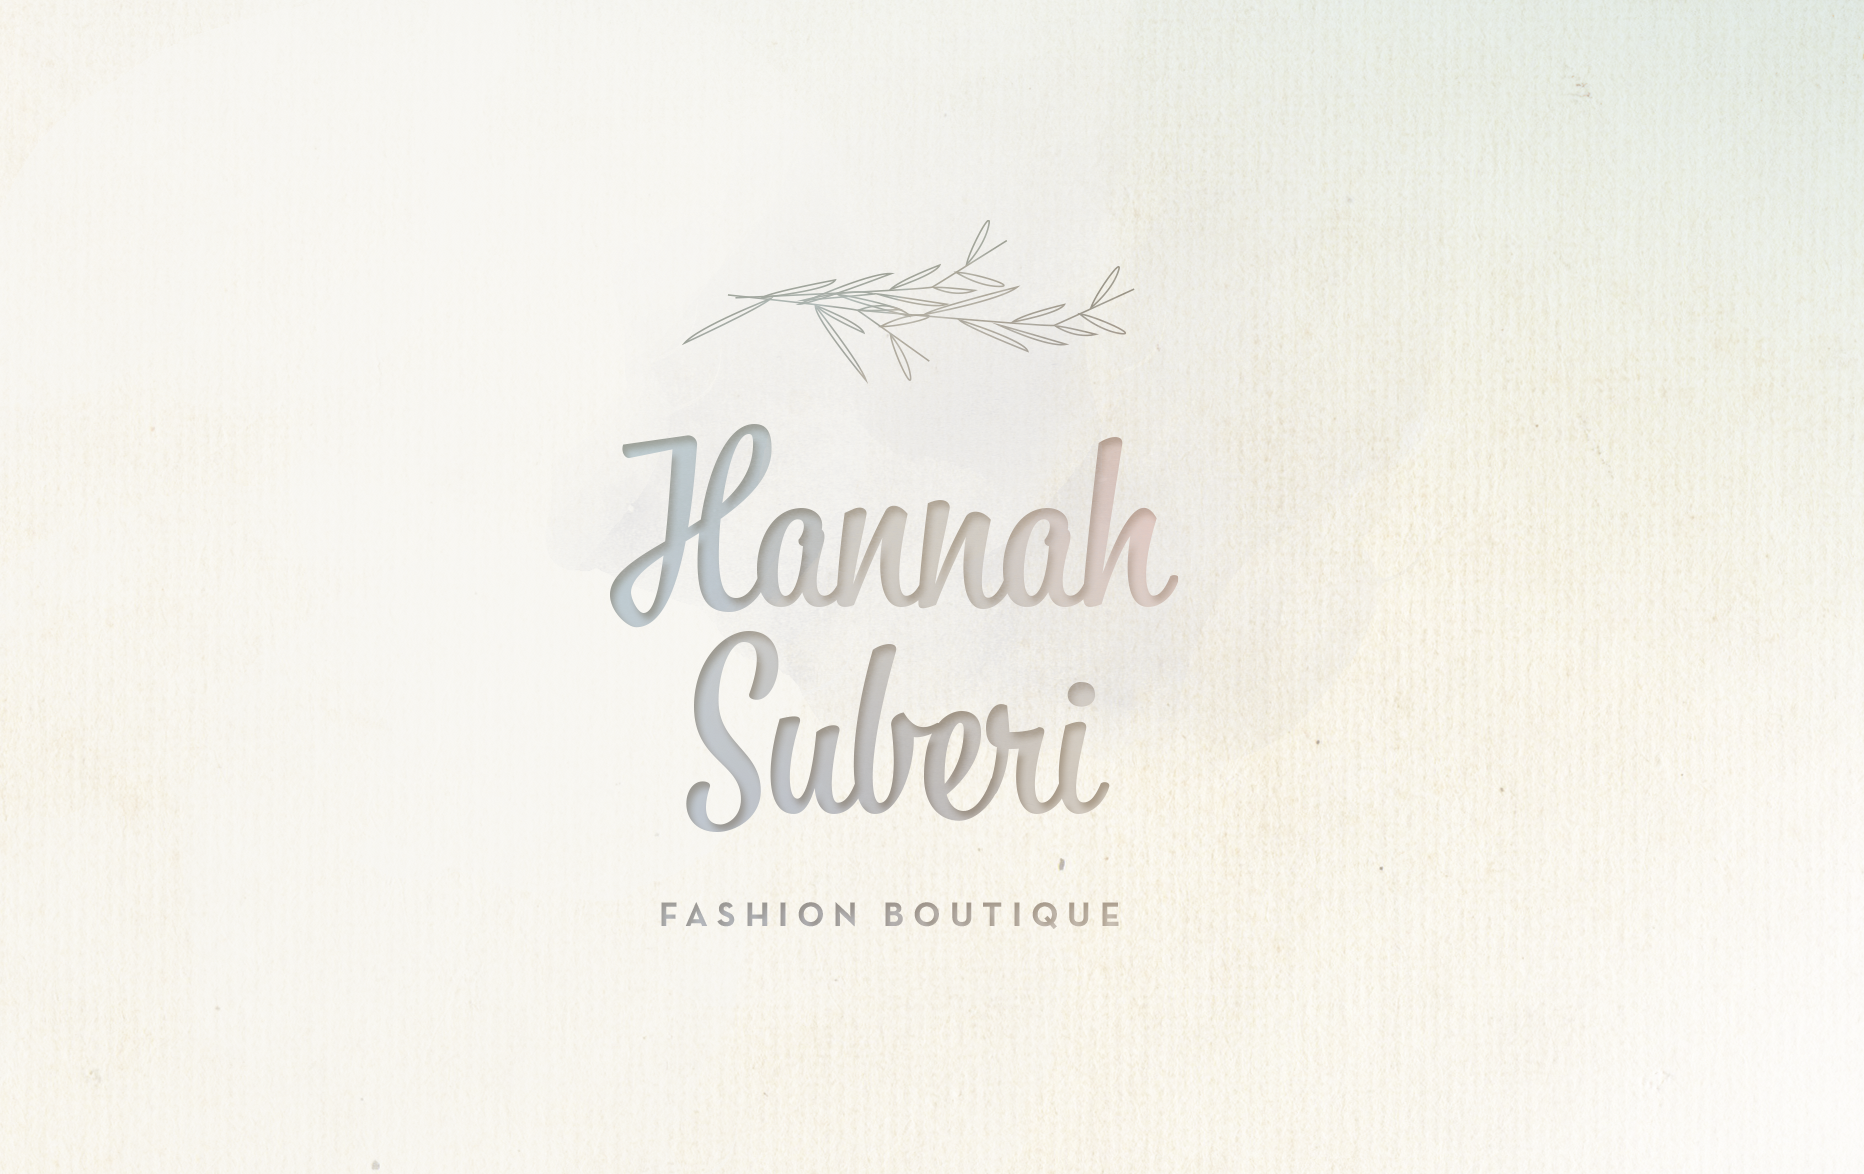 Hannah Suberi _ Logo Paper Texture_Lighter Color.png